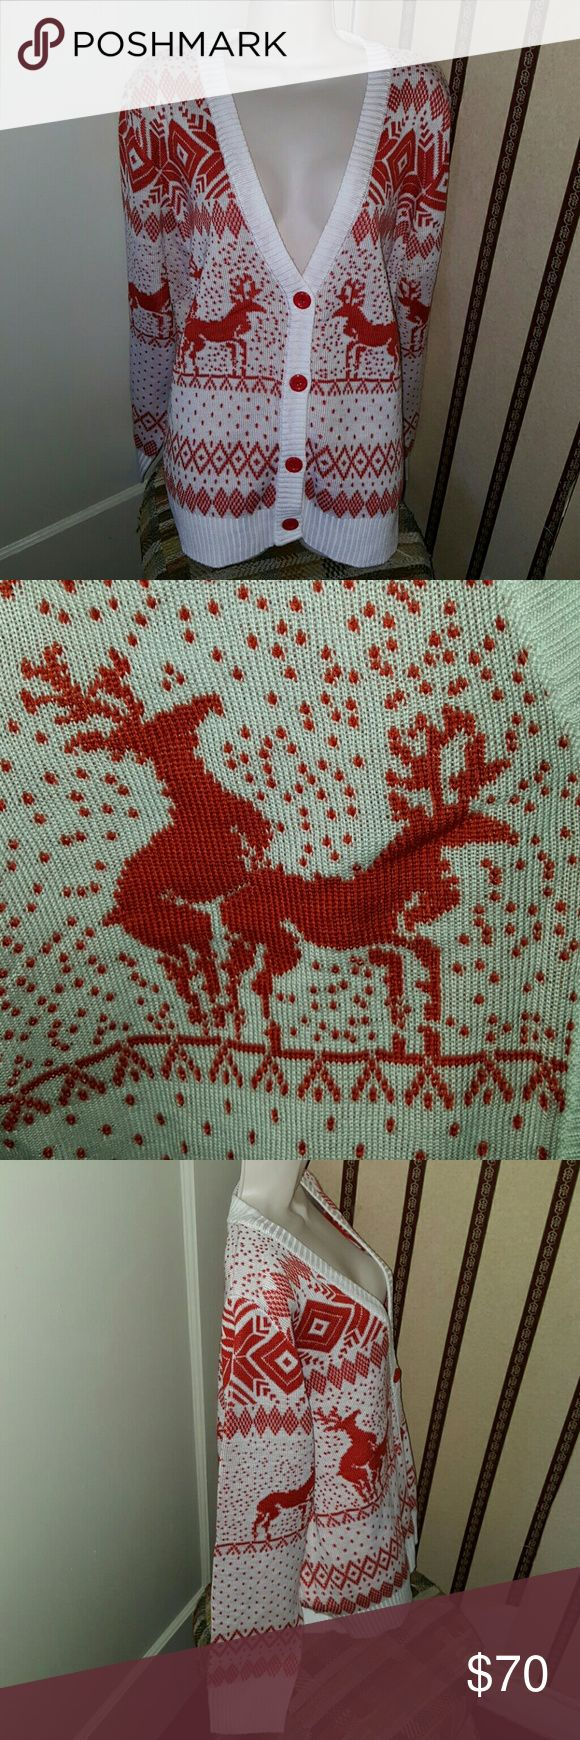 """NEW - Tipsy Elves Holiday Reindeer Cardigan Sz XL New and ready for you. The tag says """"woman's reindeer double date cardigan white size XL"""". Could work as unisex. Super soft. 100% acrylic. There is a dust/stain near the last button. See the last 2 pics. Easy fit. tipsy elves Sweaters Cardigans"""